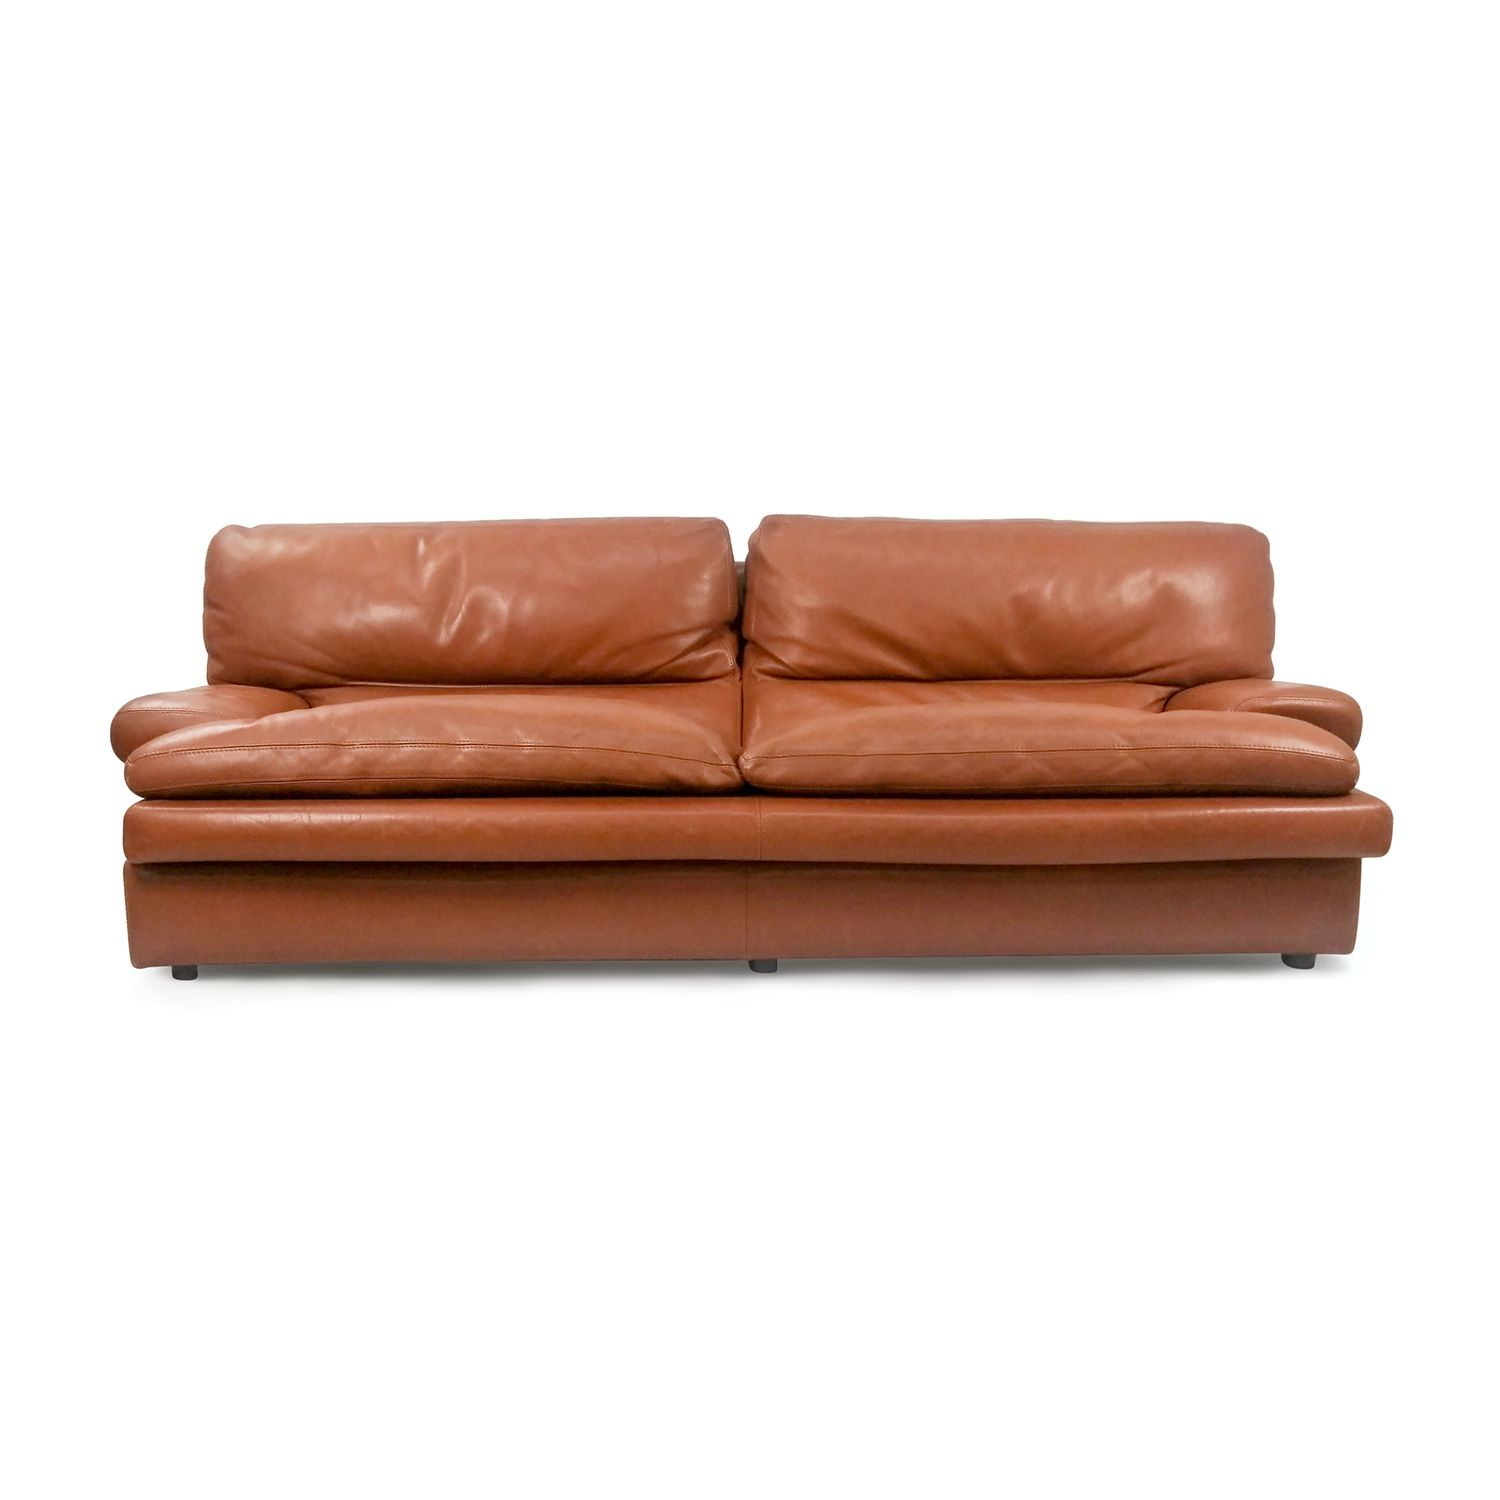 Roche Bobois Leather Sofa Furnishare S